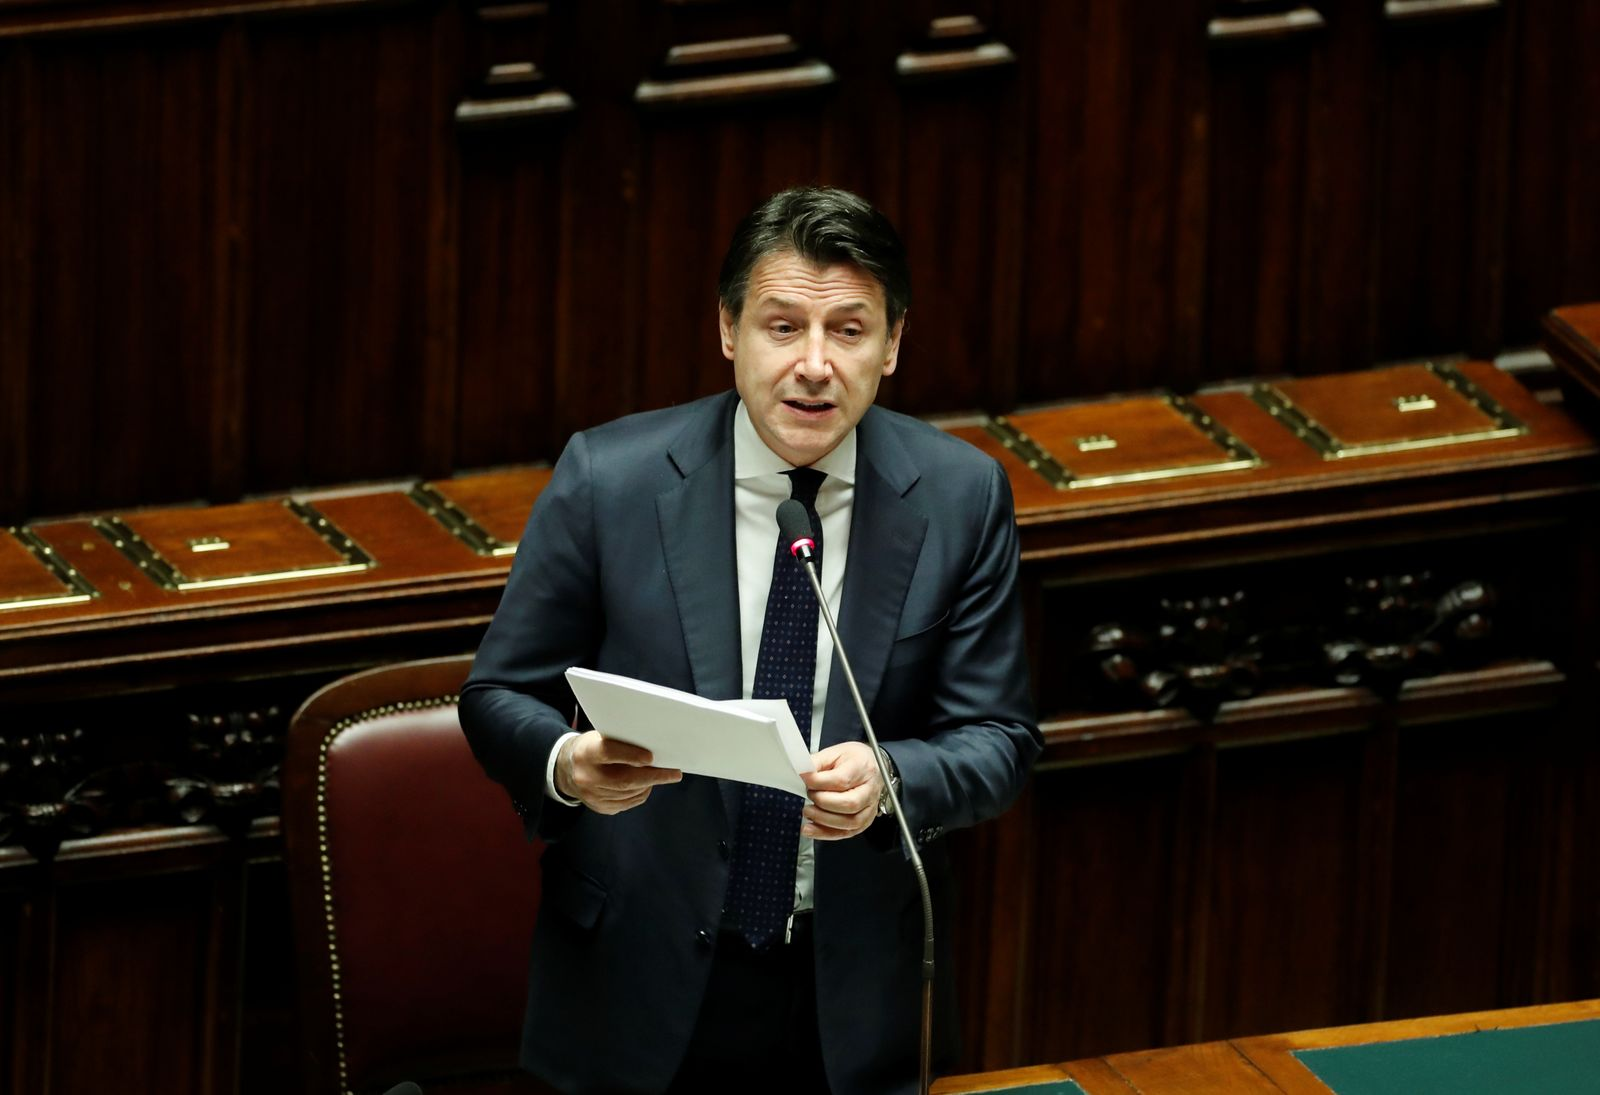 Italian Prime Minister Giuseppe Conte gives an update on the coronavirus outbreak in Italy